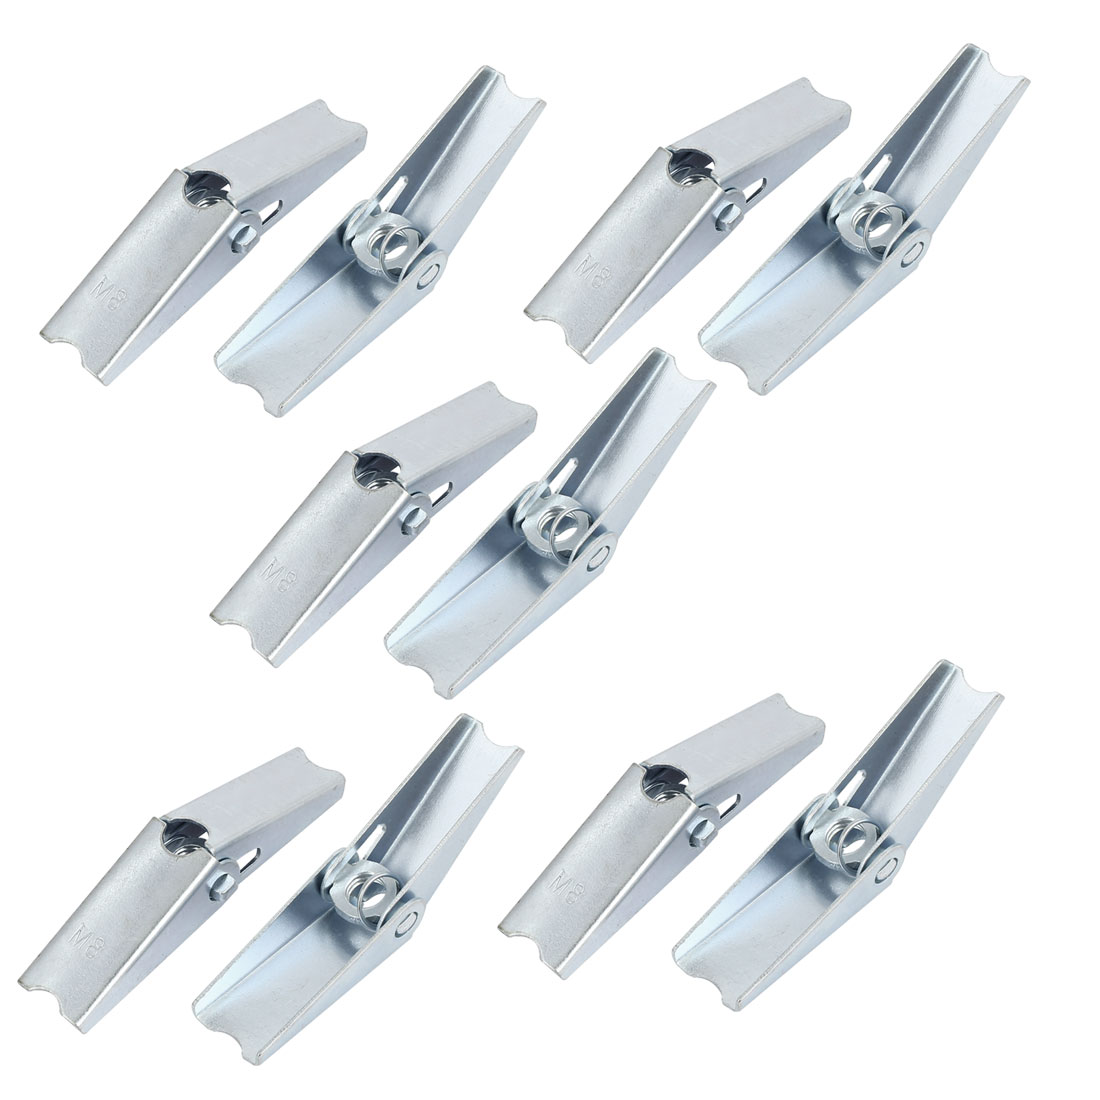 M8 Dia Female Thread Spring Loaded Hollow Wall Anchor Toggle Wing Nut 10pcs